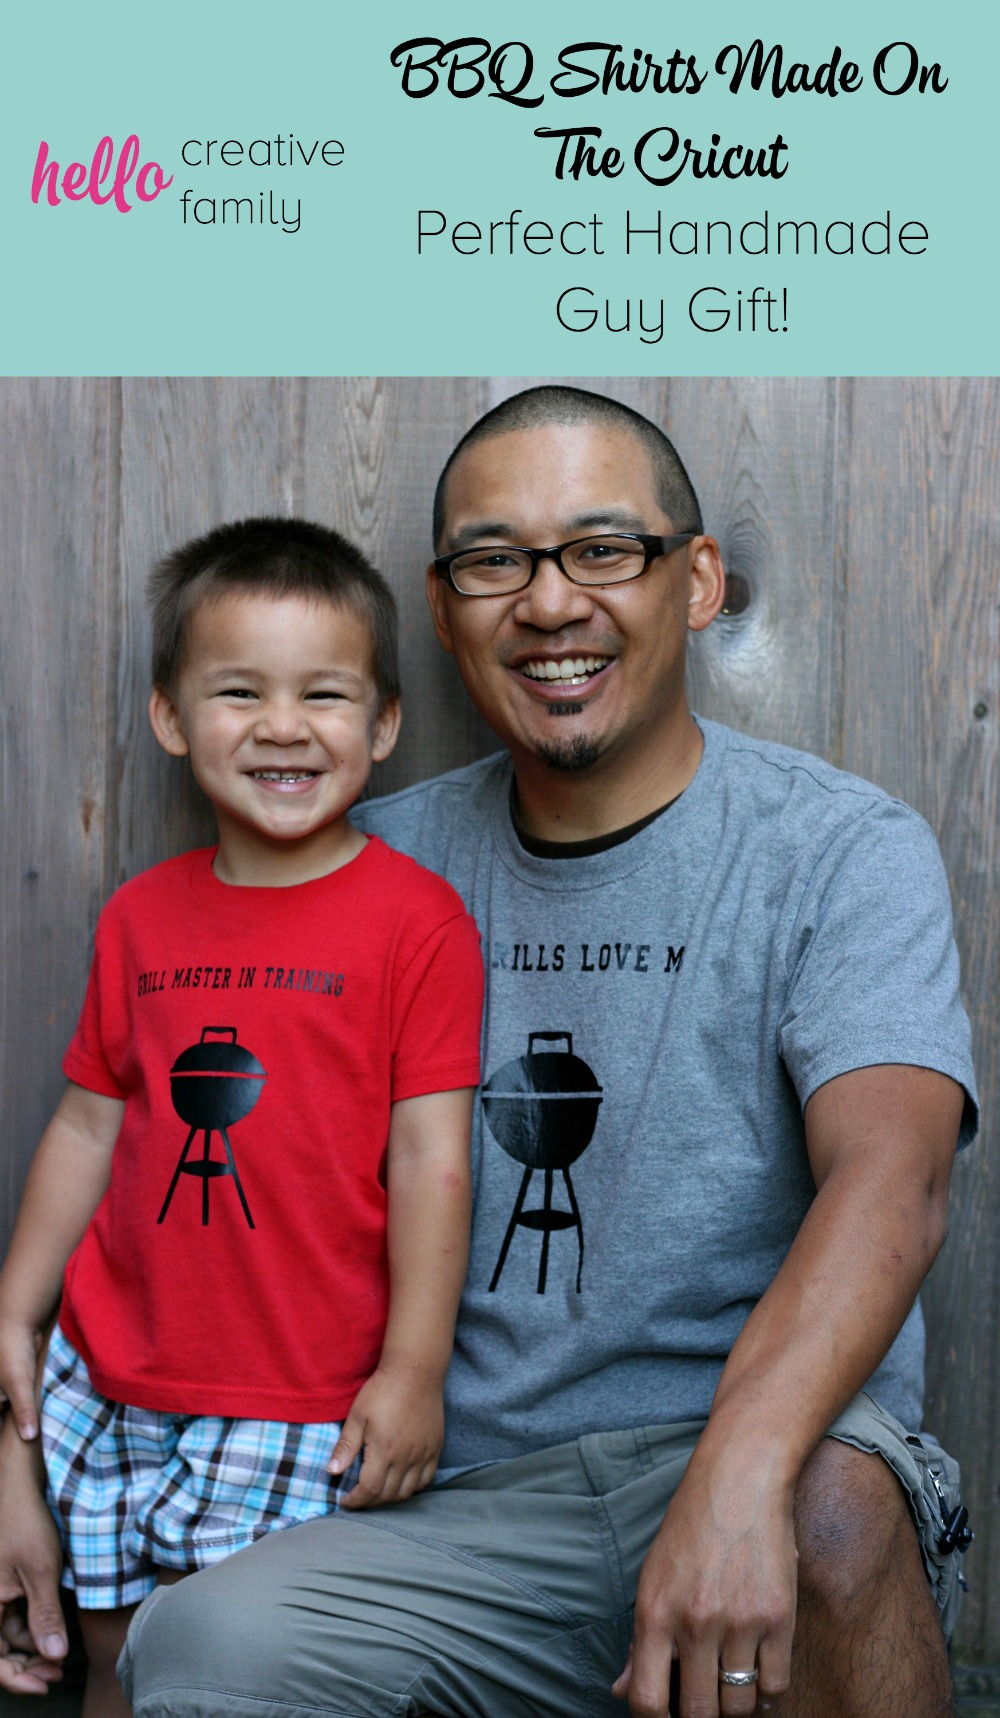 Know a guy (or gal) who's crazy for BBQ? Whip the up one of 4 BBQ Shirts from Hello Creative Family. The perfect handmade guy gift! A fabulous Cricut project perfect for Father's Day, Christmas or Birthdays!